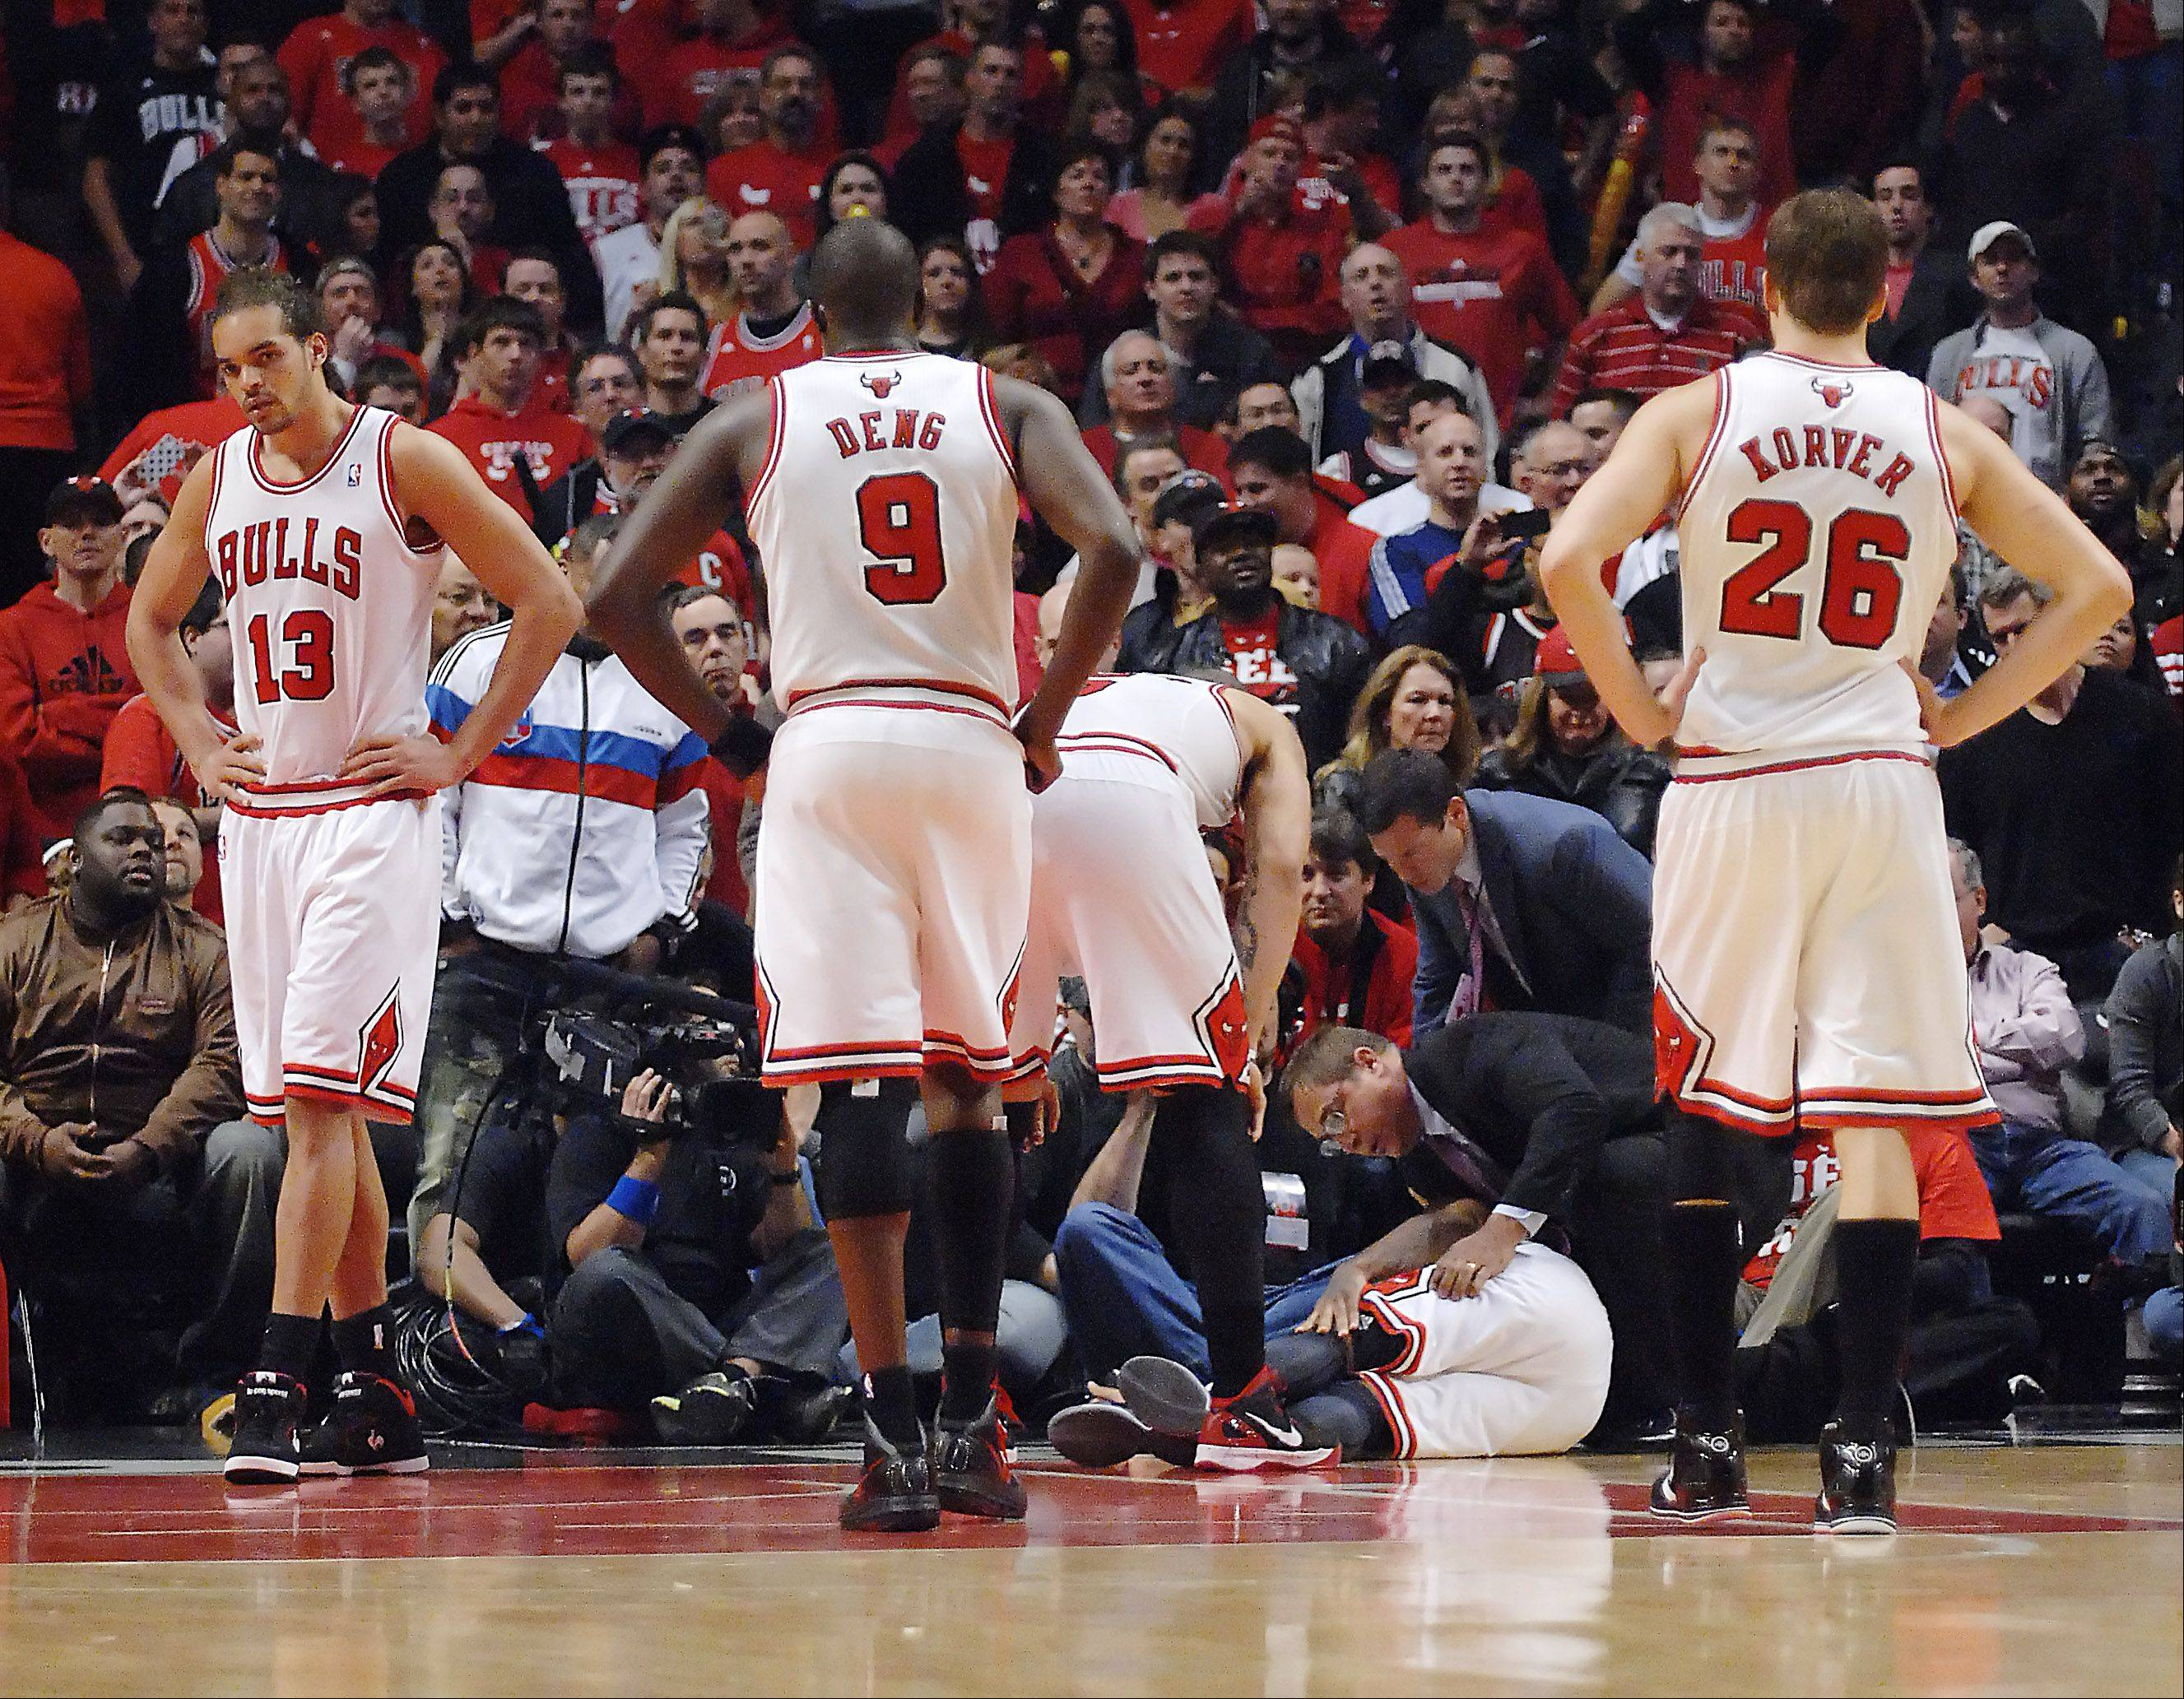 Chicago Bulls point guard Derrick Rose's teammates react to his injury late in the game.